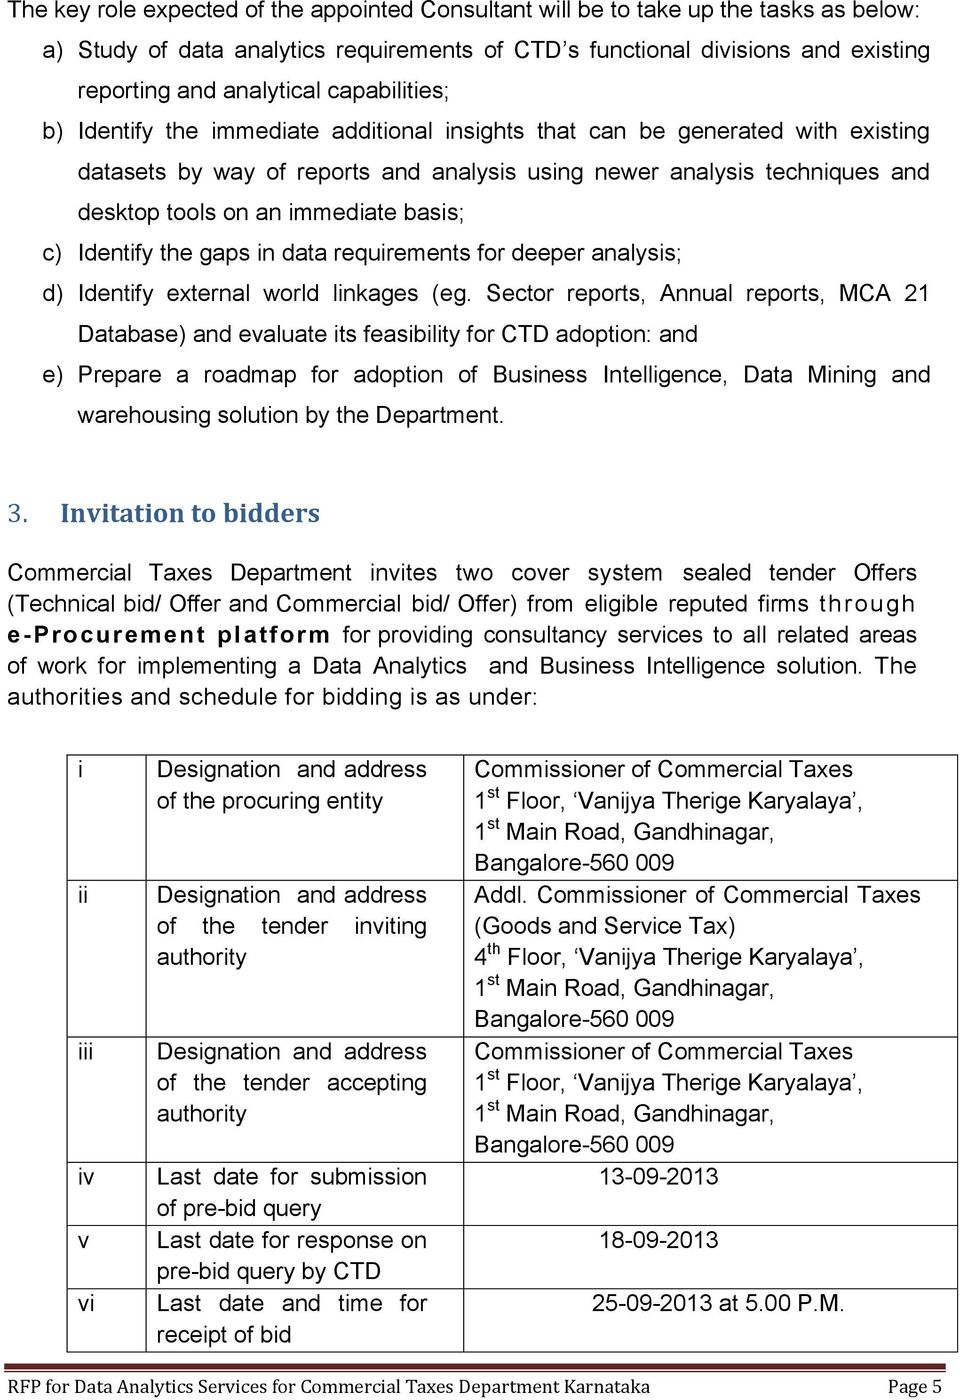 Governmernt of Karnataka Department of Commercial Taxes